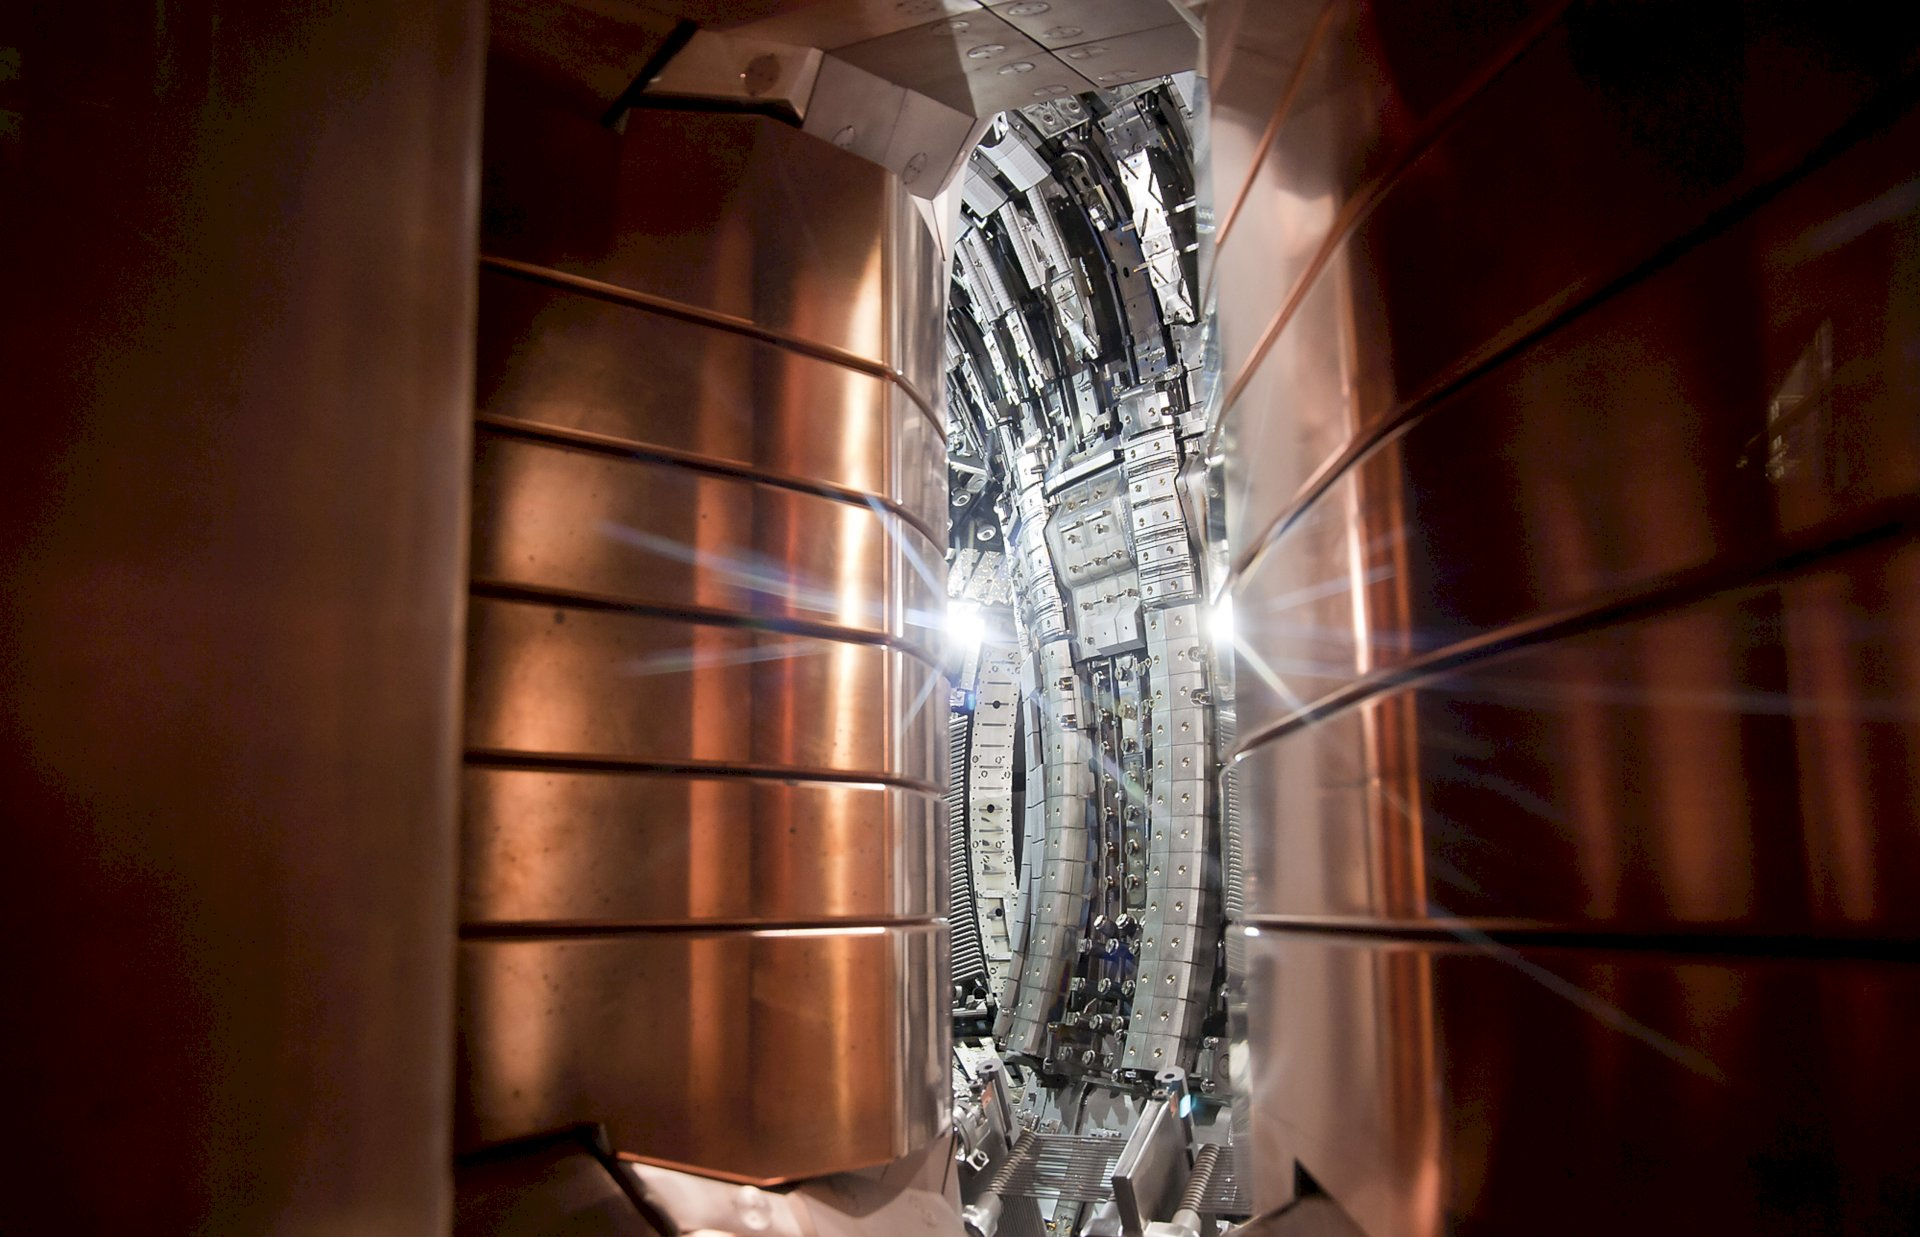 UK Atomic Energy Authority The tokamak inside